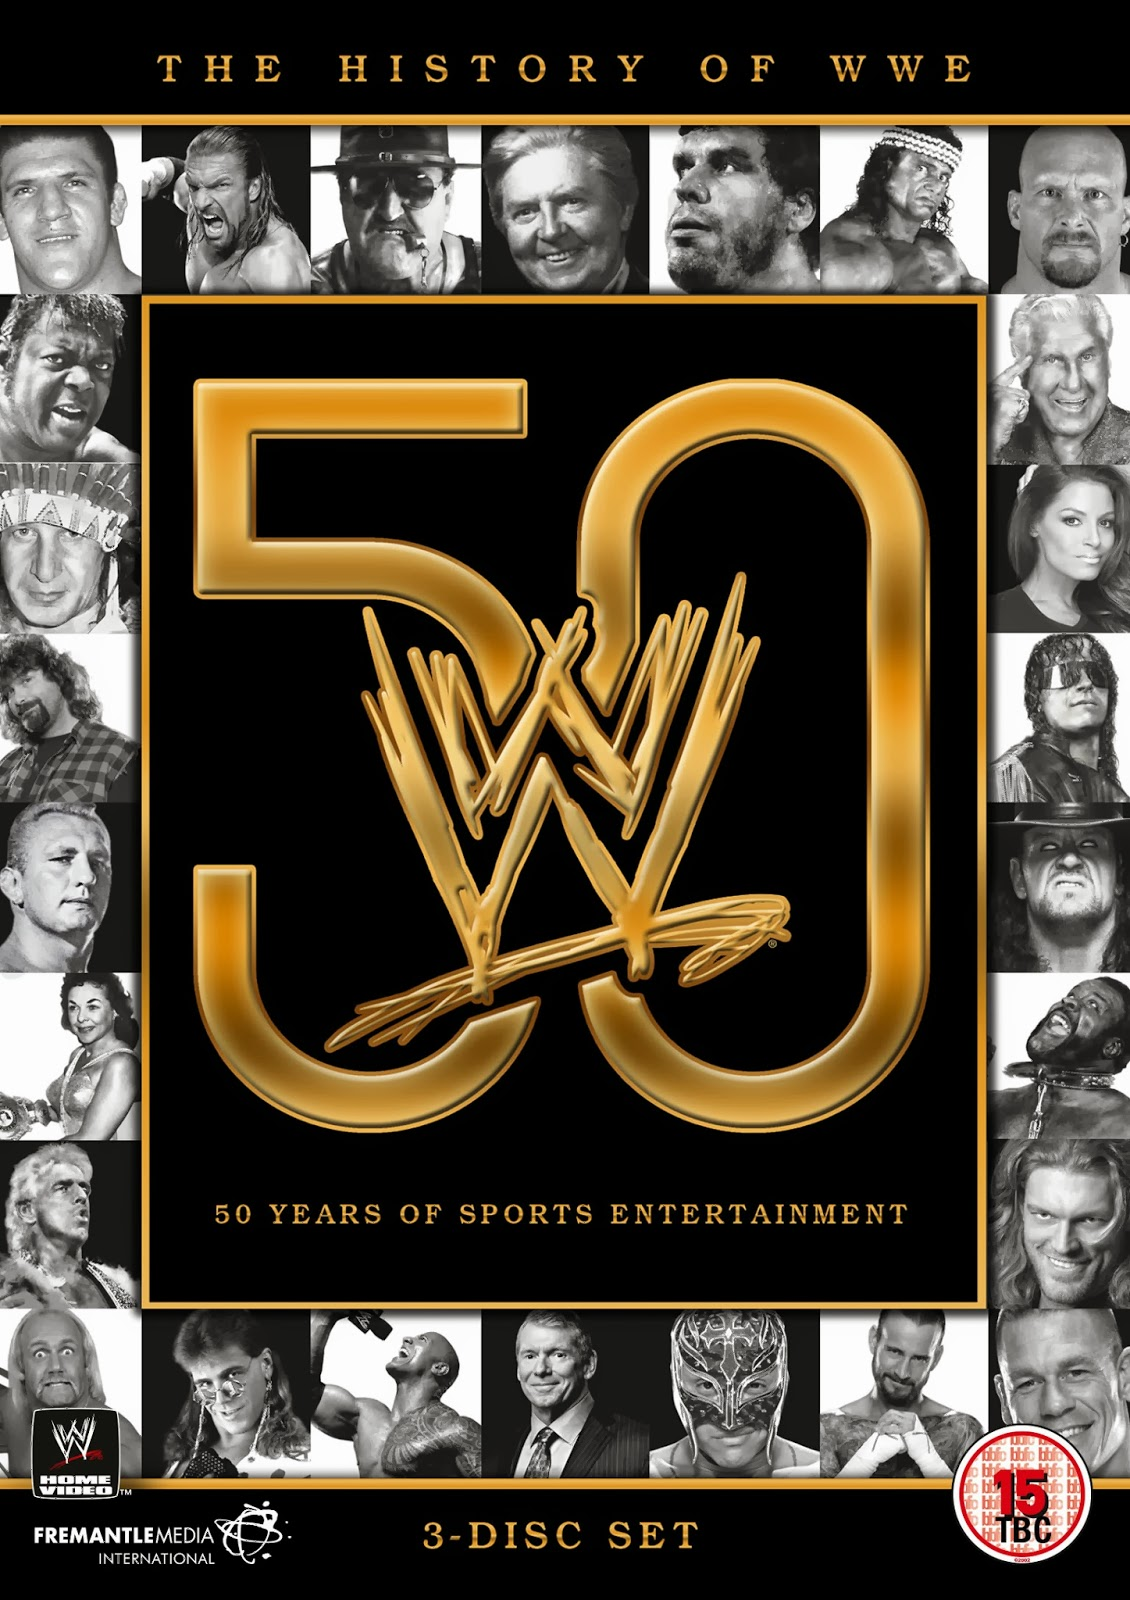 History of WWE - 50 Years of Sports Entertainment